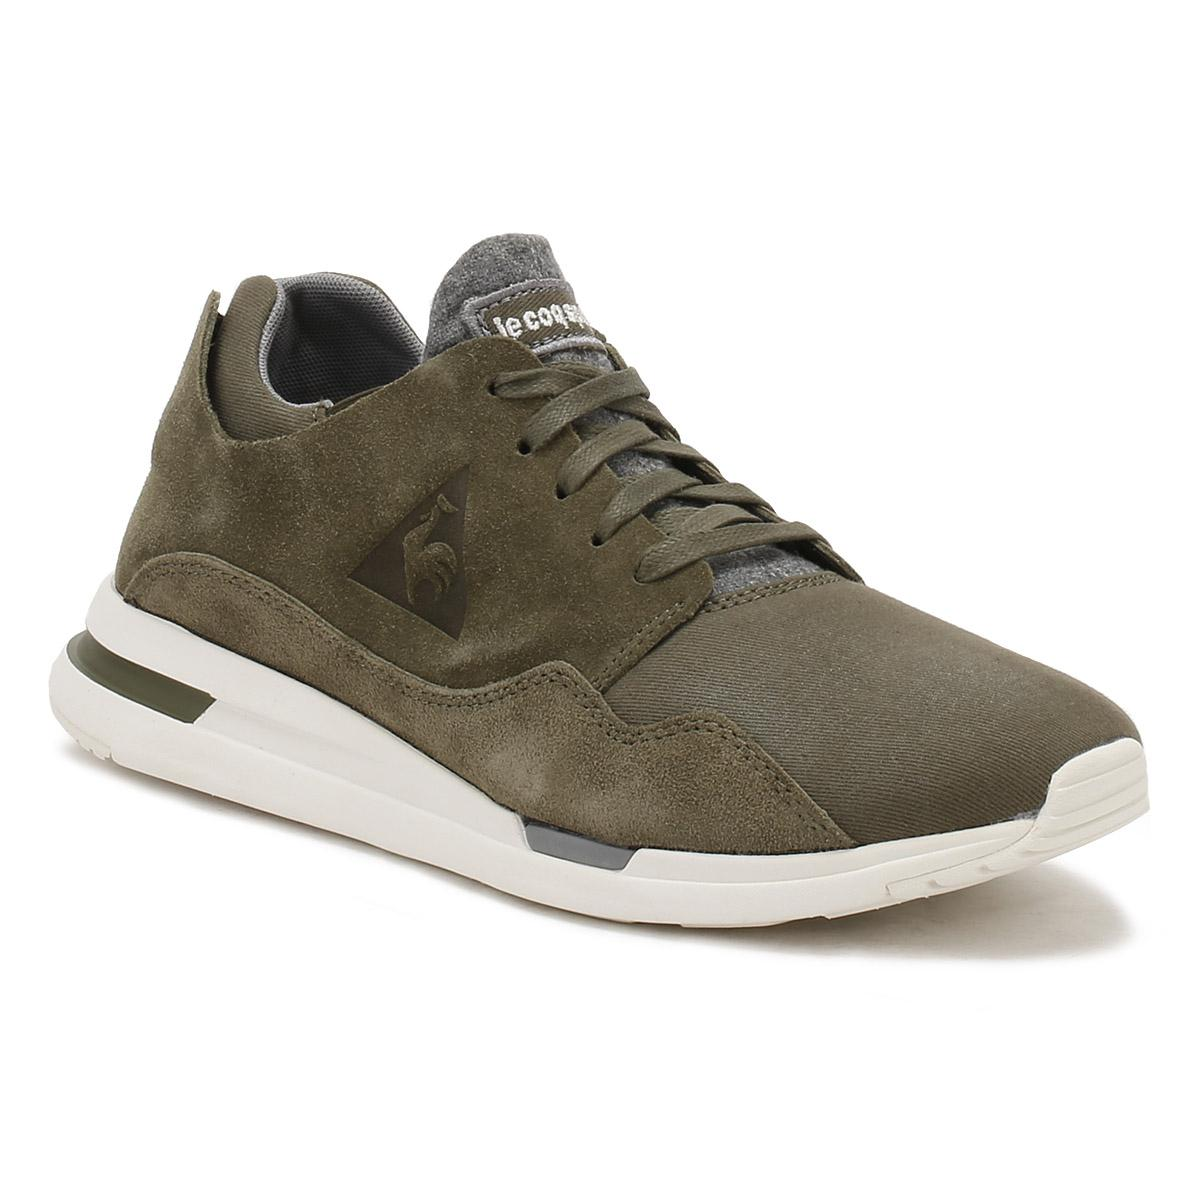 4bde9960b7a0 Lyst - Le Coq Sportif Mens Olive Night Green Lcs R Pure Trainers in ...